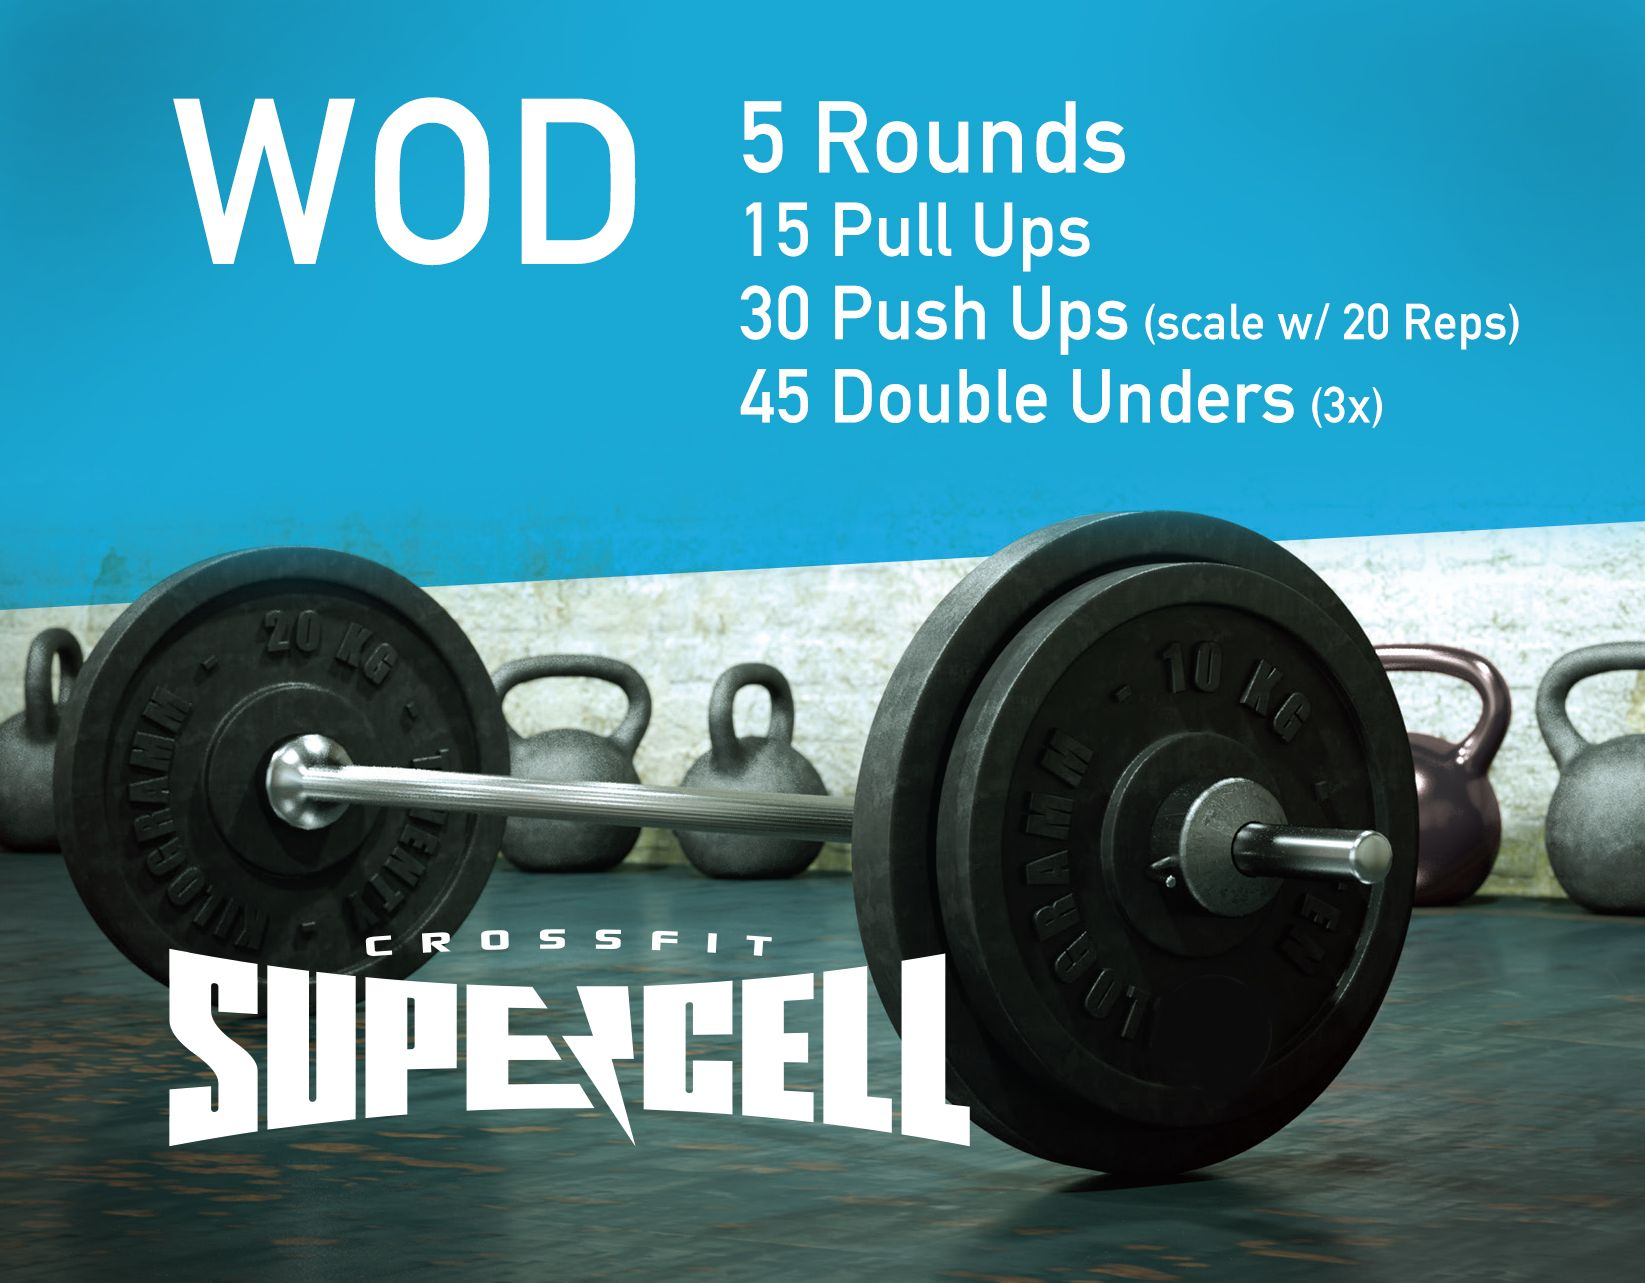 Discussion on this topic: A 5-Move Intro to CrossFit, a-5-move-intro-to-crossfit/